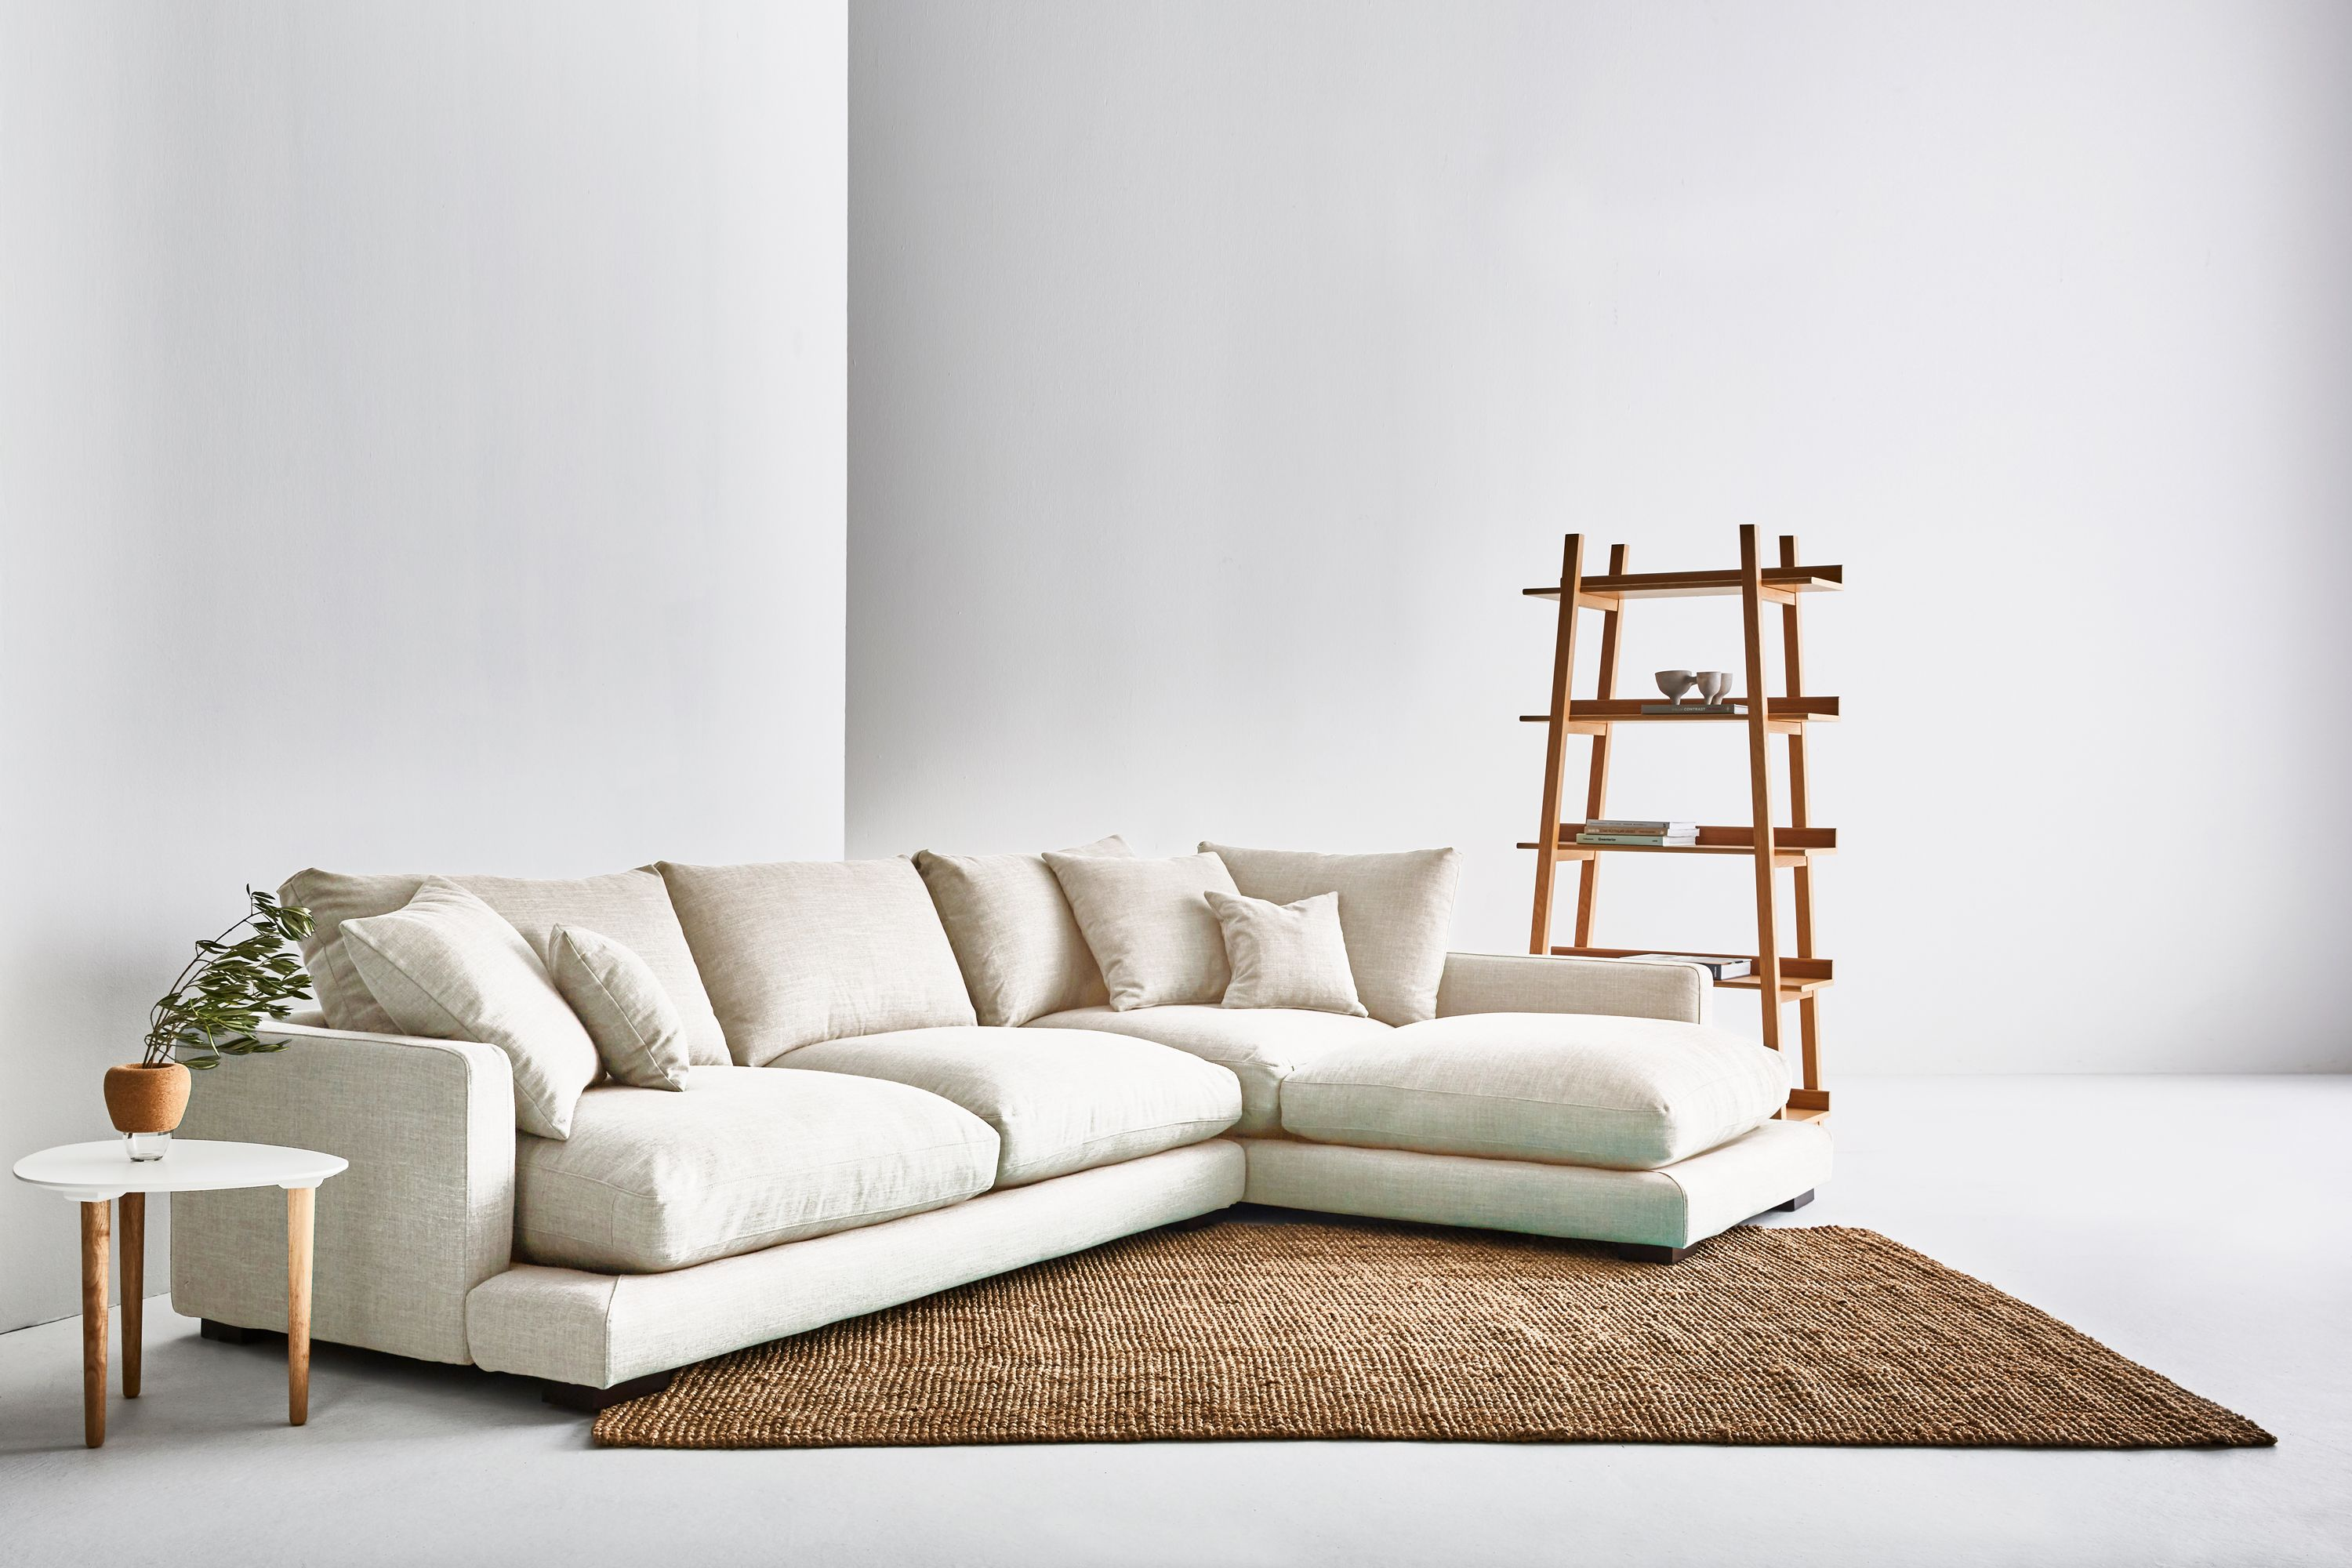 Long Beach Corner Sofa 2999 Cream Couch Living Room White Corner Sofas Sofa Decor